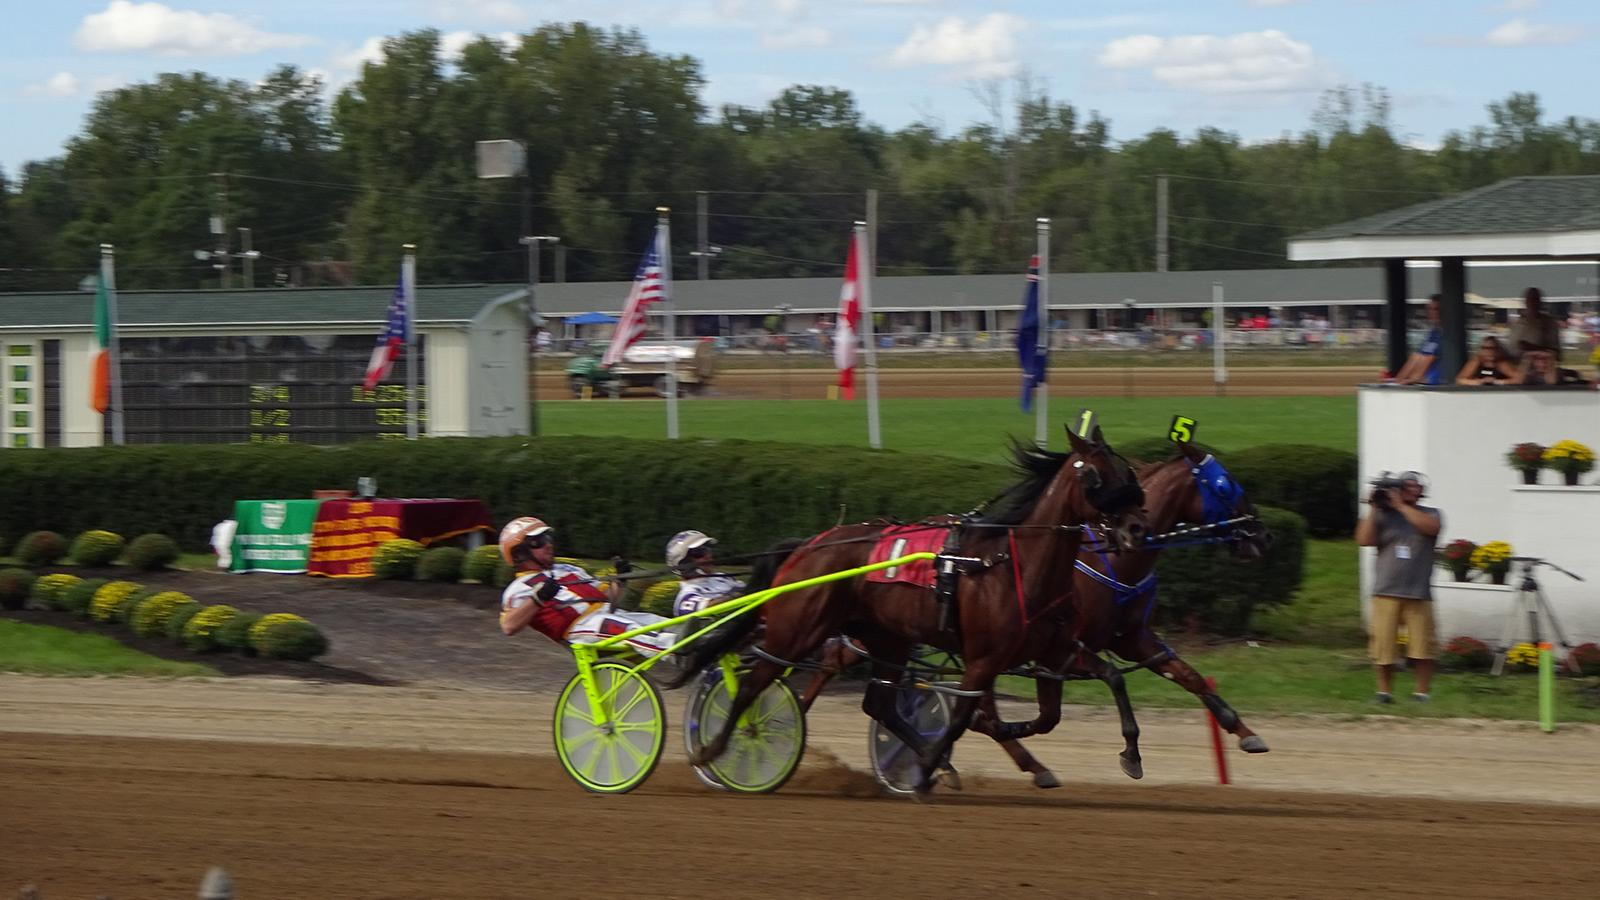 The Jug is a Triple Crown harness race.